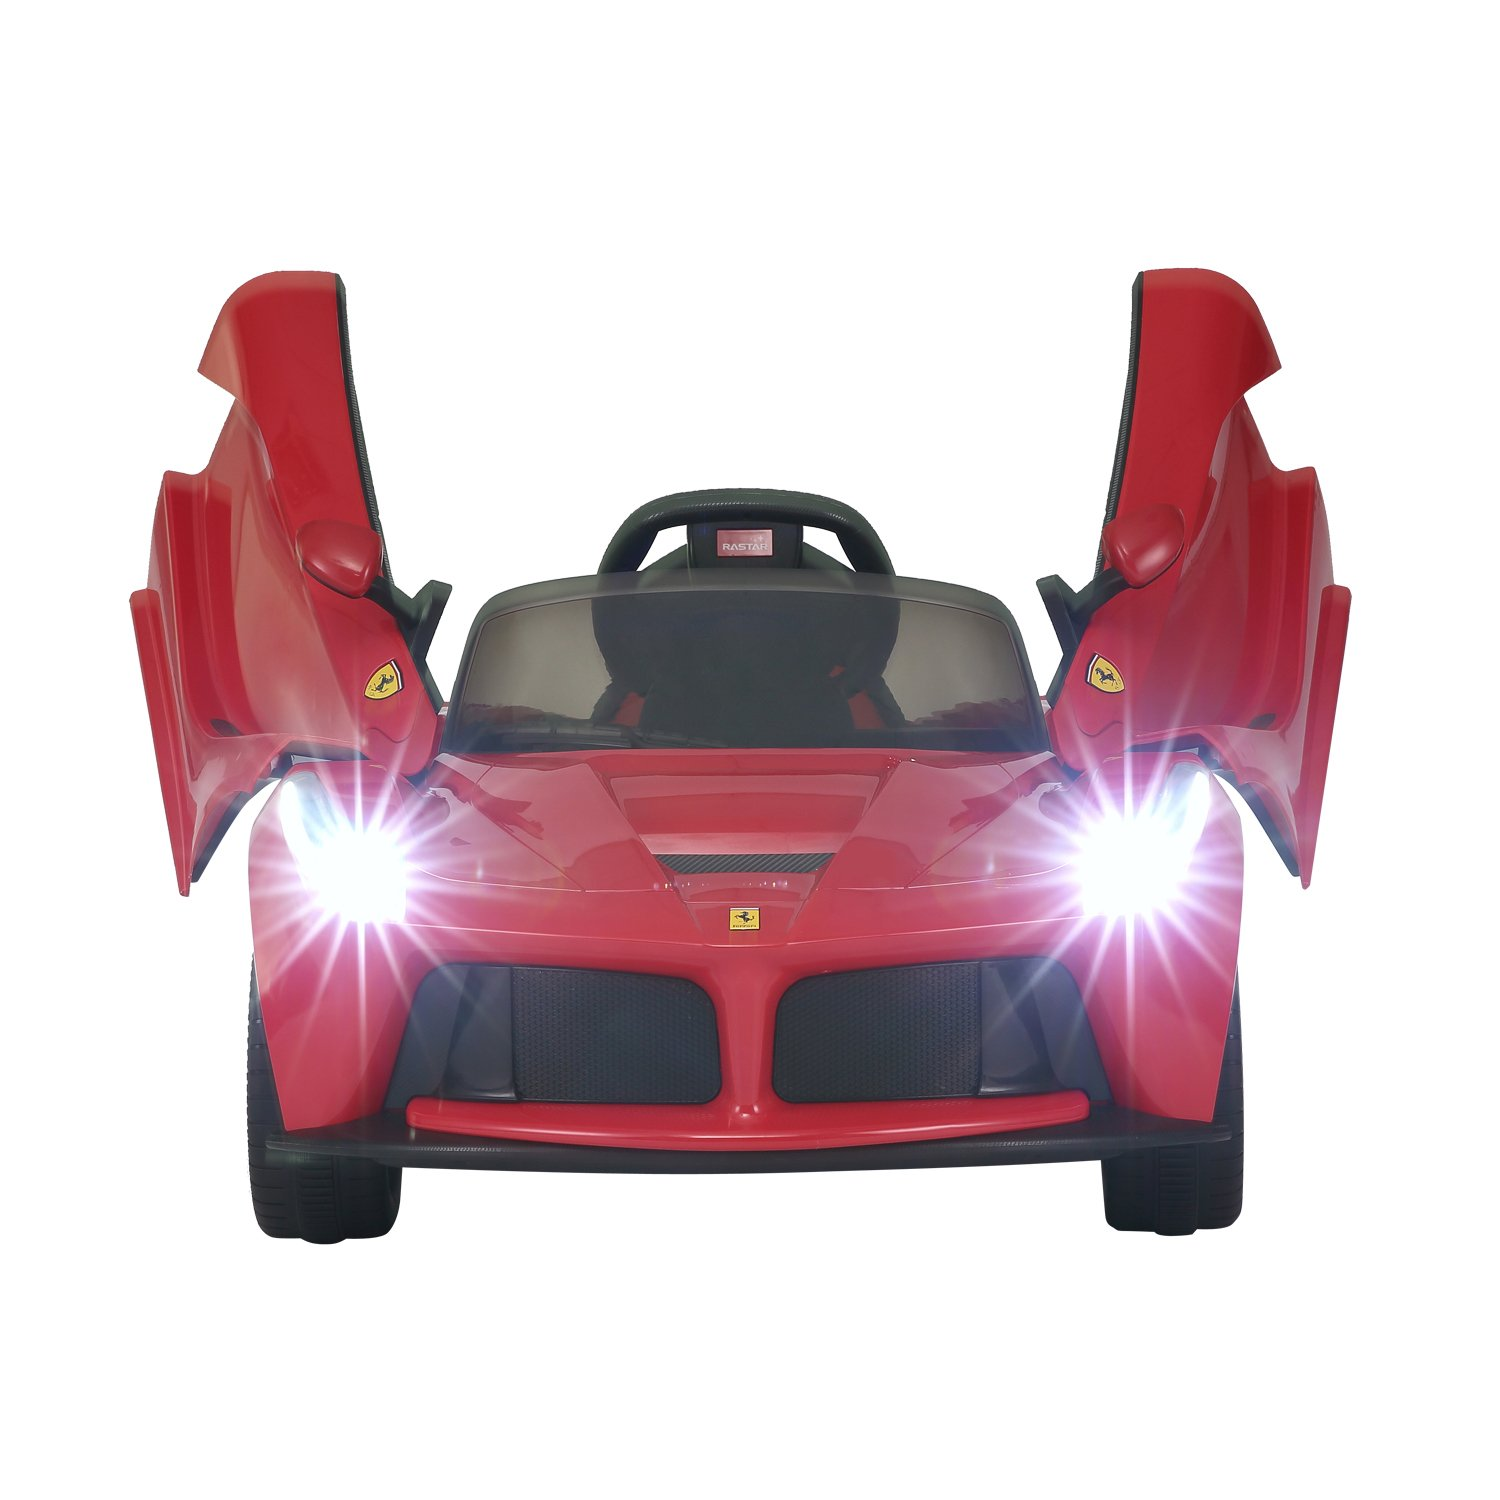 amazoncom aosom 12v ferrari laferrari kids electric ride on car with mp3 and remote control red toys games